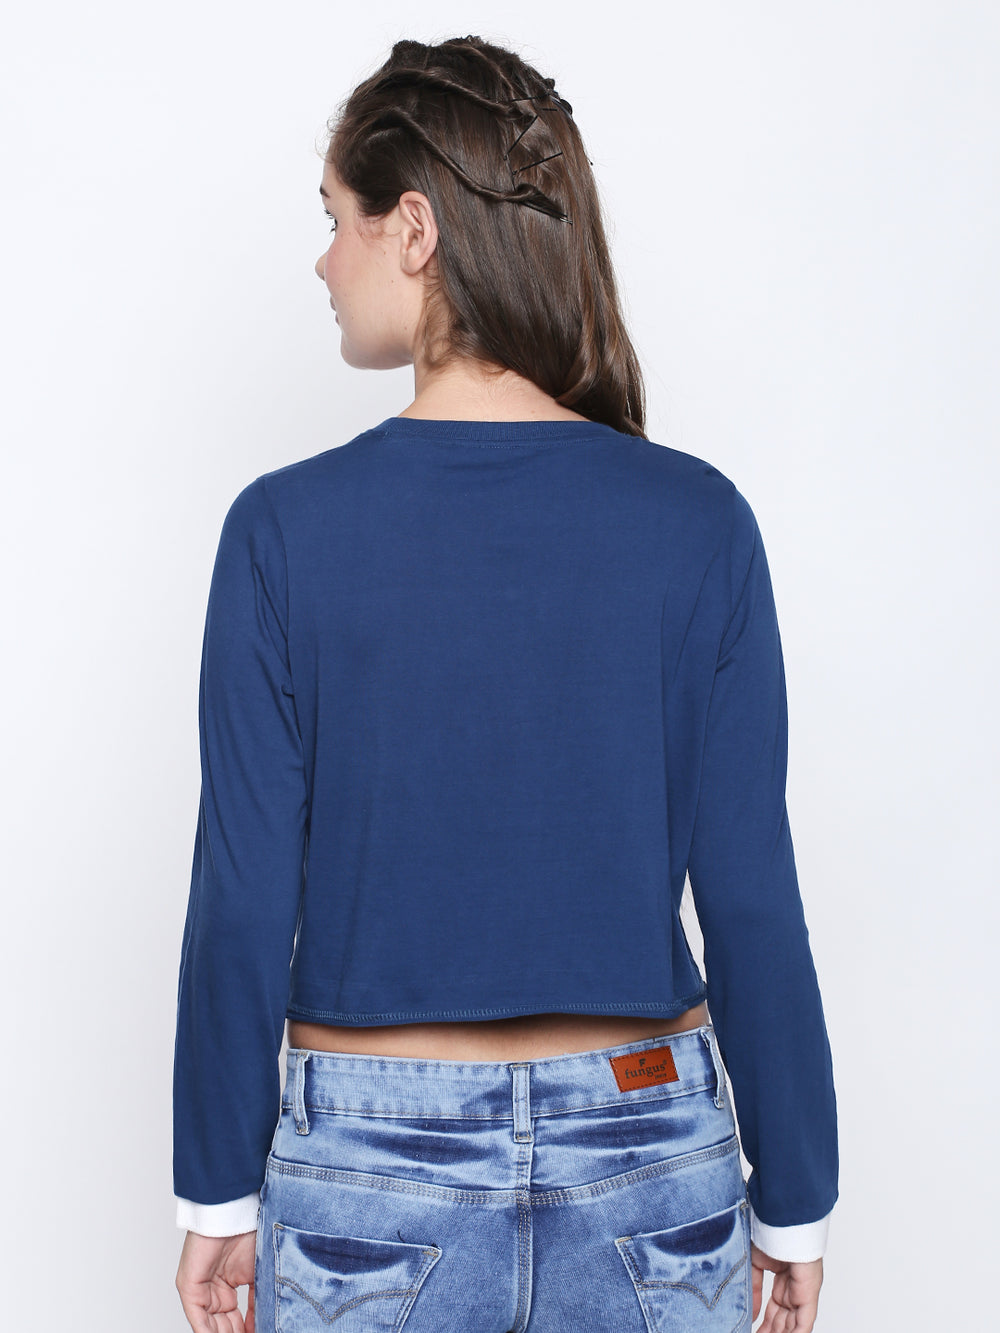 Navy Blue Unformulated Full Sleeve Crop Top For Women's